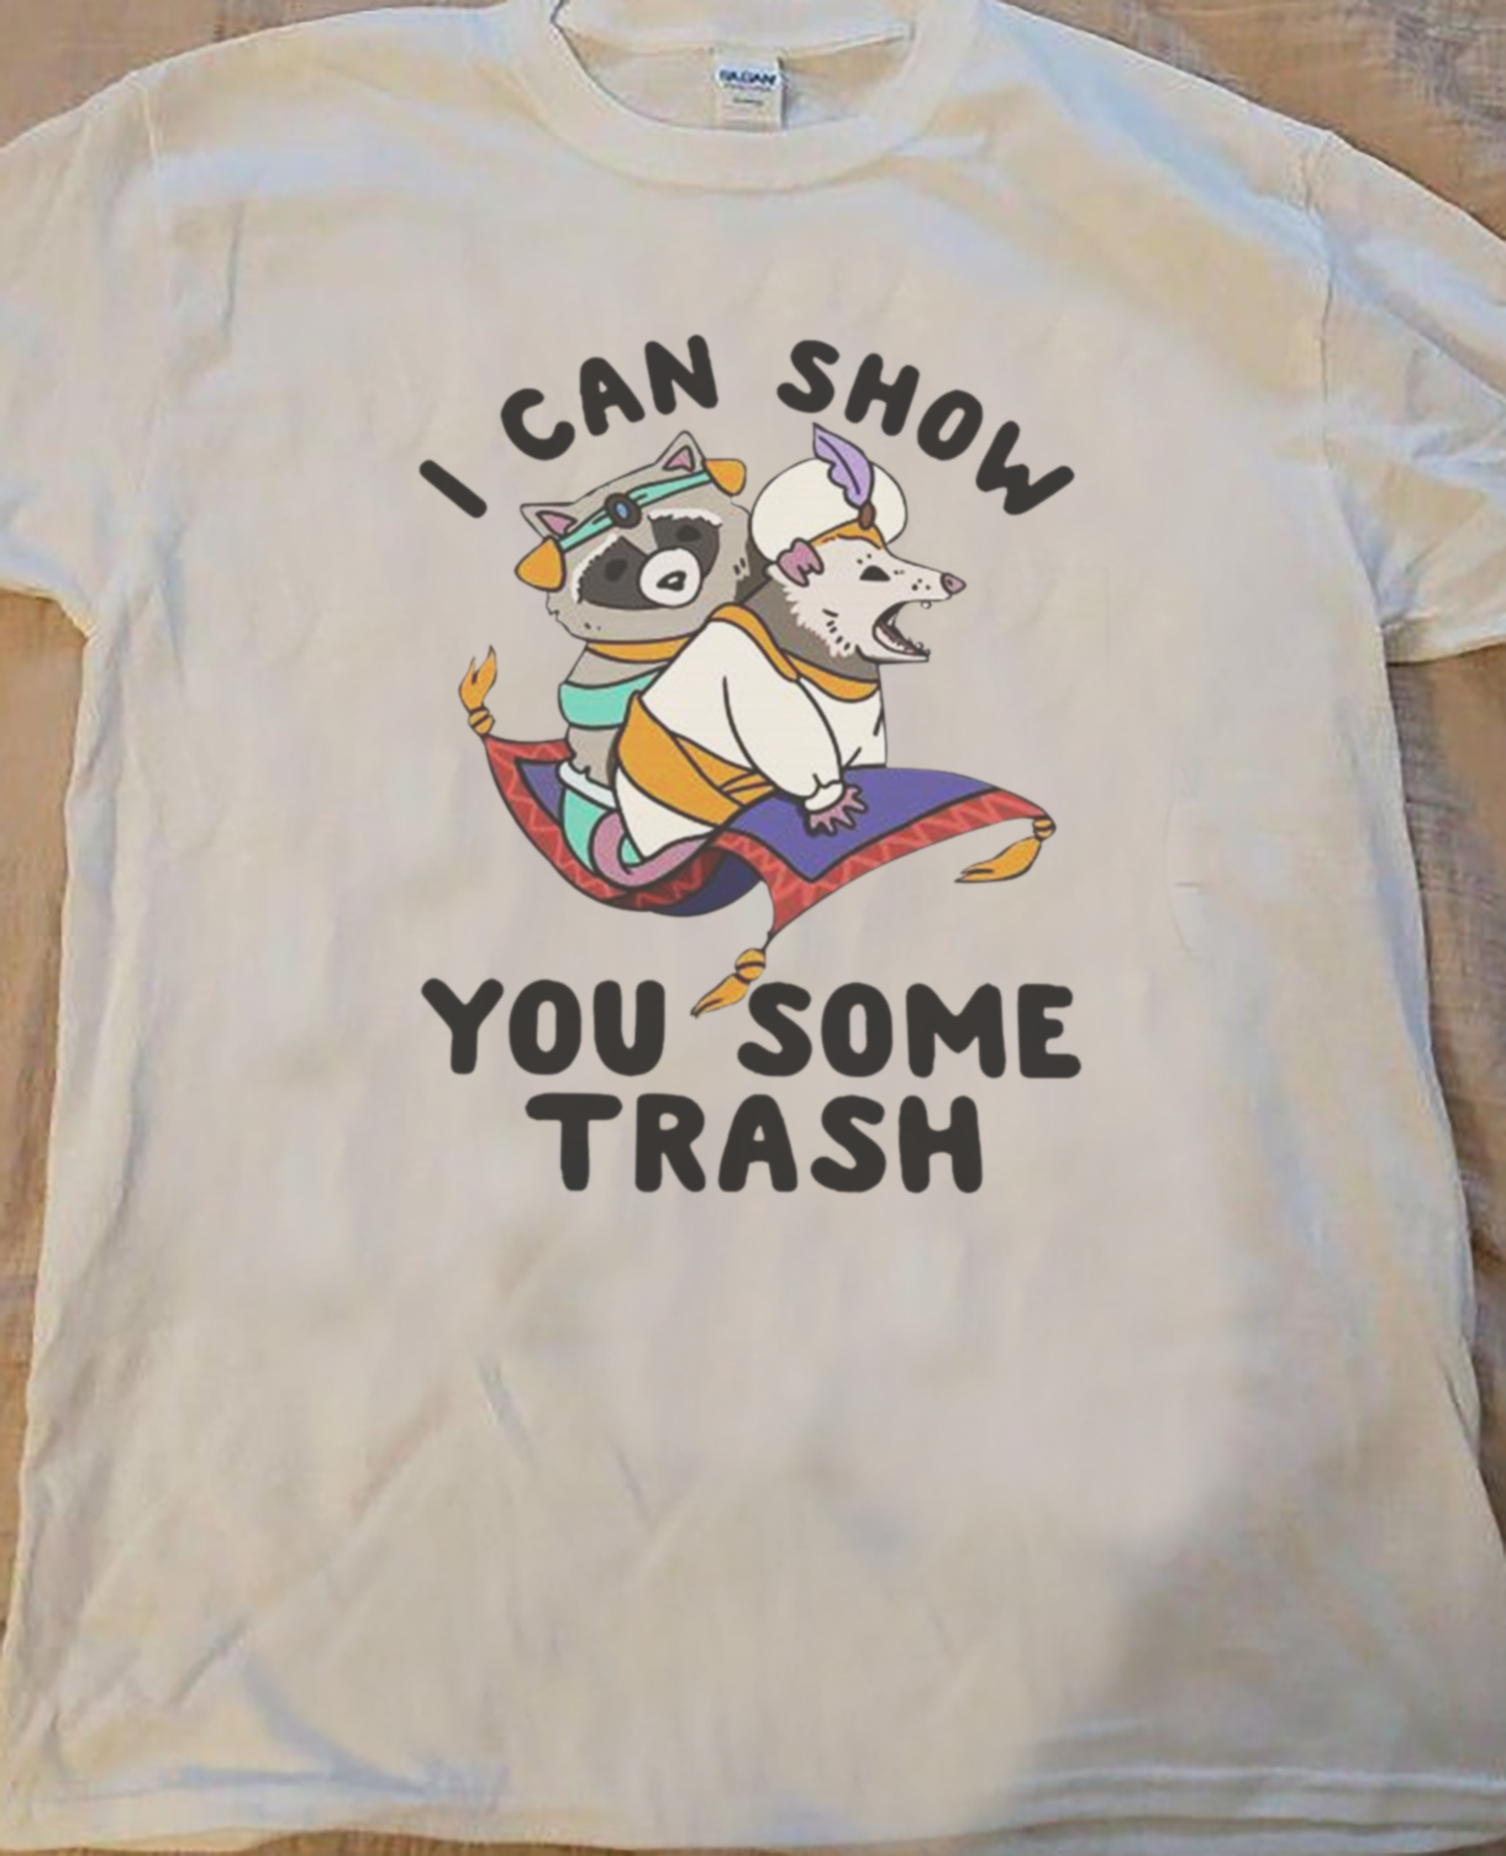 The perfect tshirt doesn't exis-